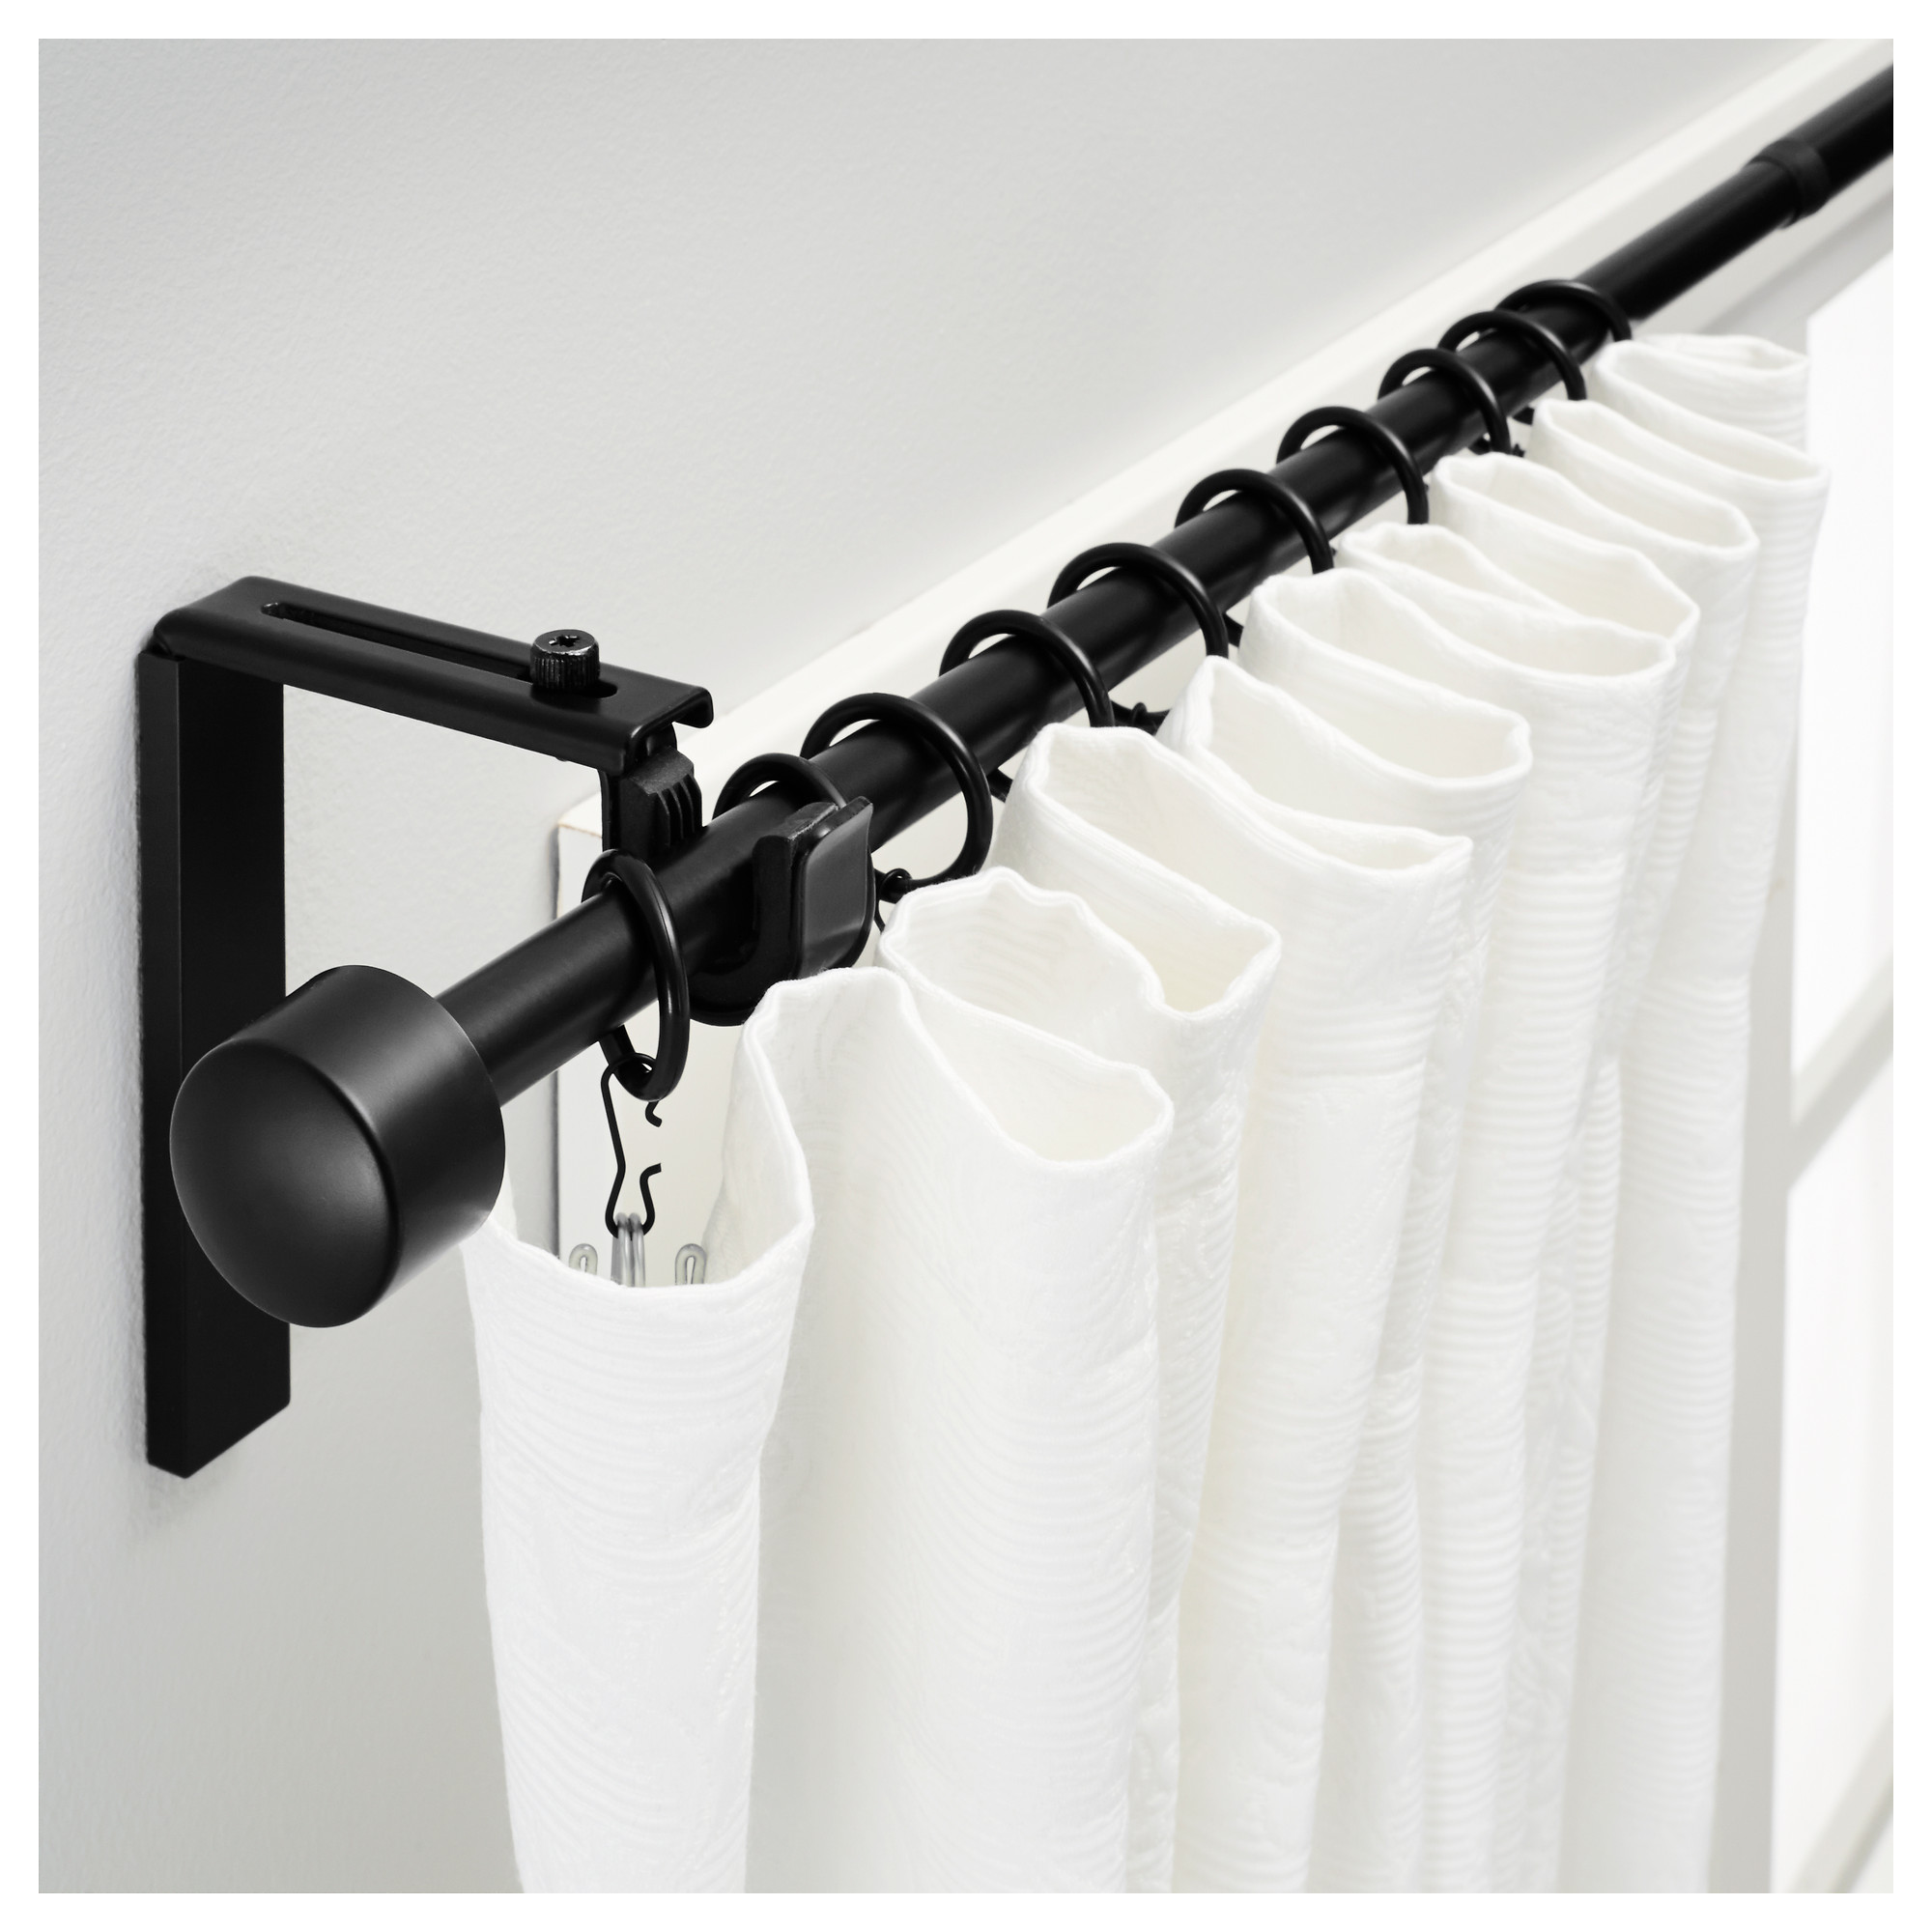 32124 low profile ceiling mount curtain track curtain tracks - Ceiling Mounted Shower Curtain Homesfeed